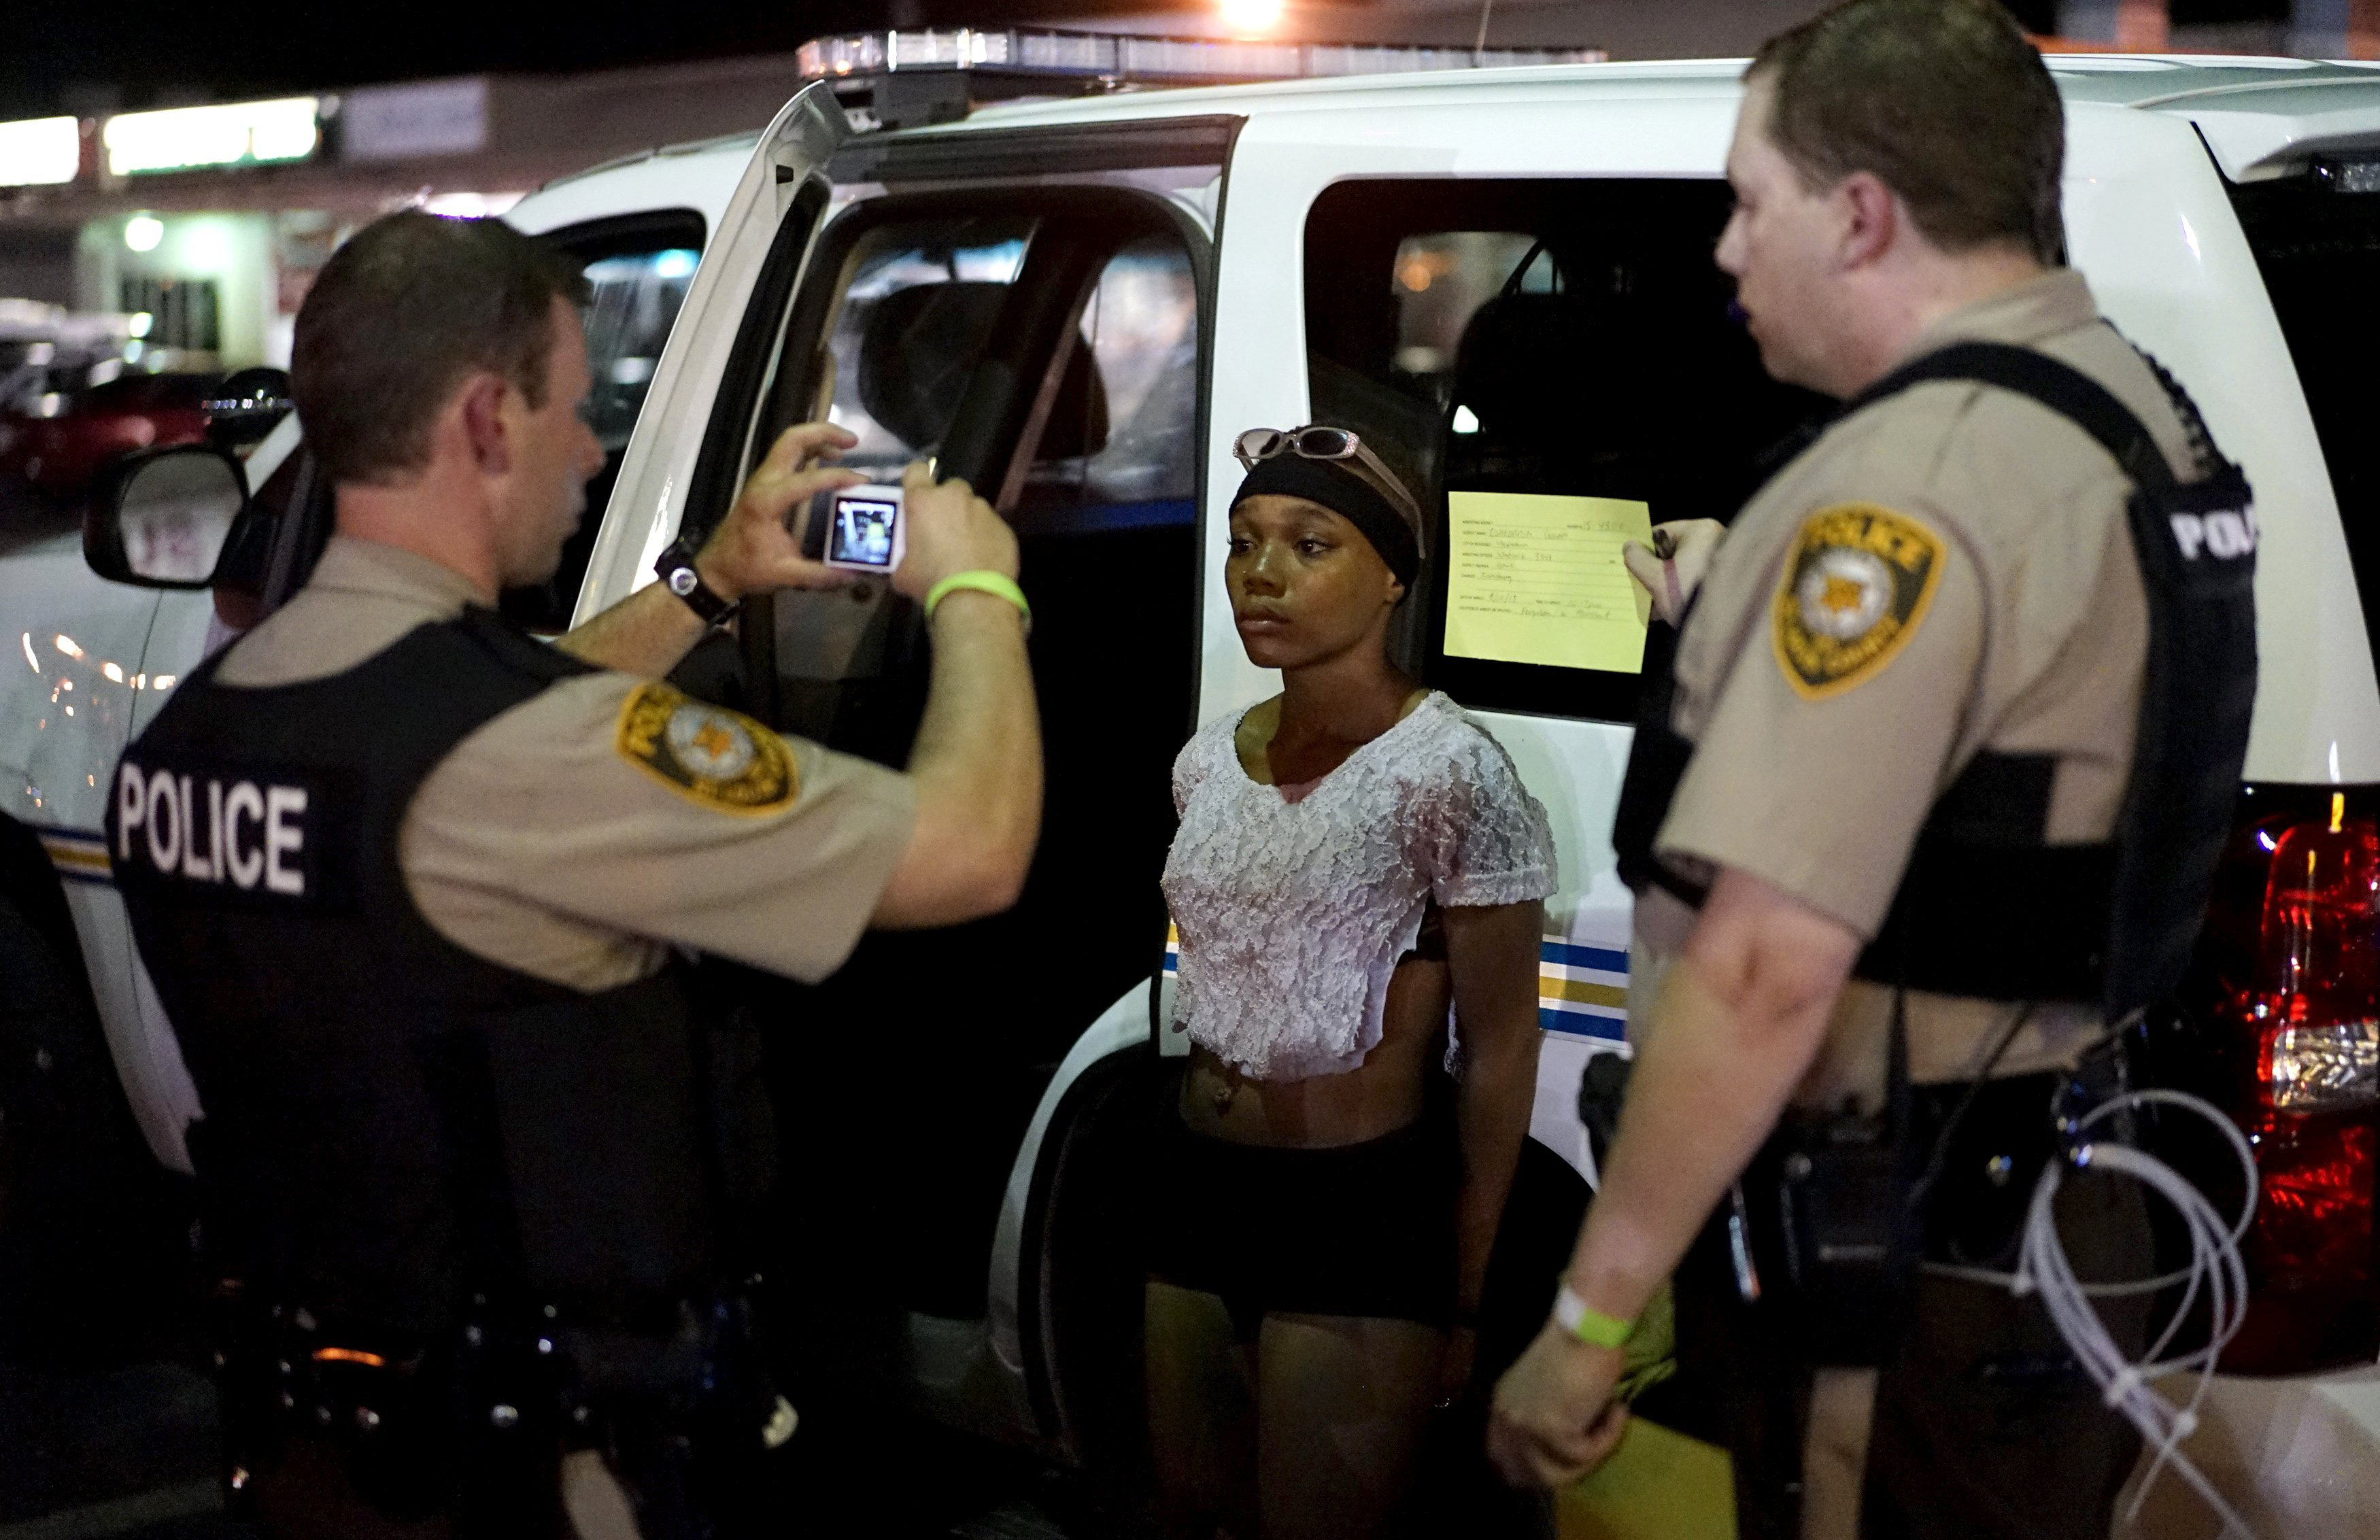 Police take a mug shot of a protester who was detained in Ferguson, Mo. on Aug. 10, 2015.